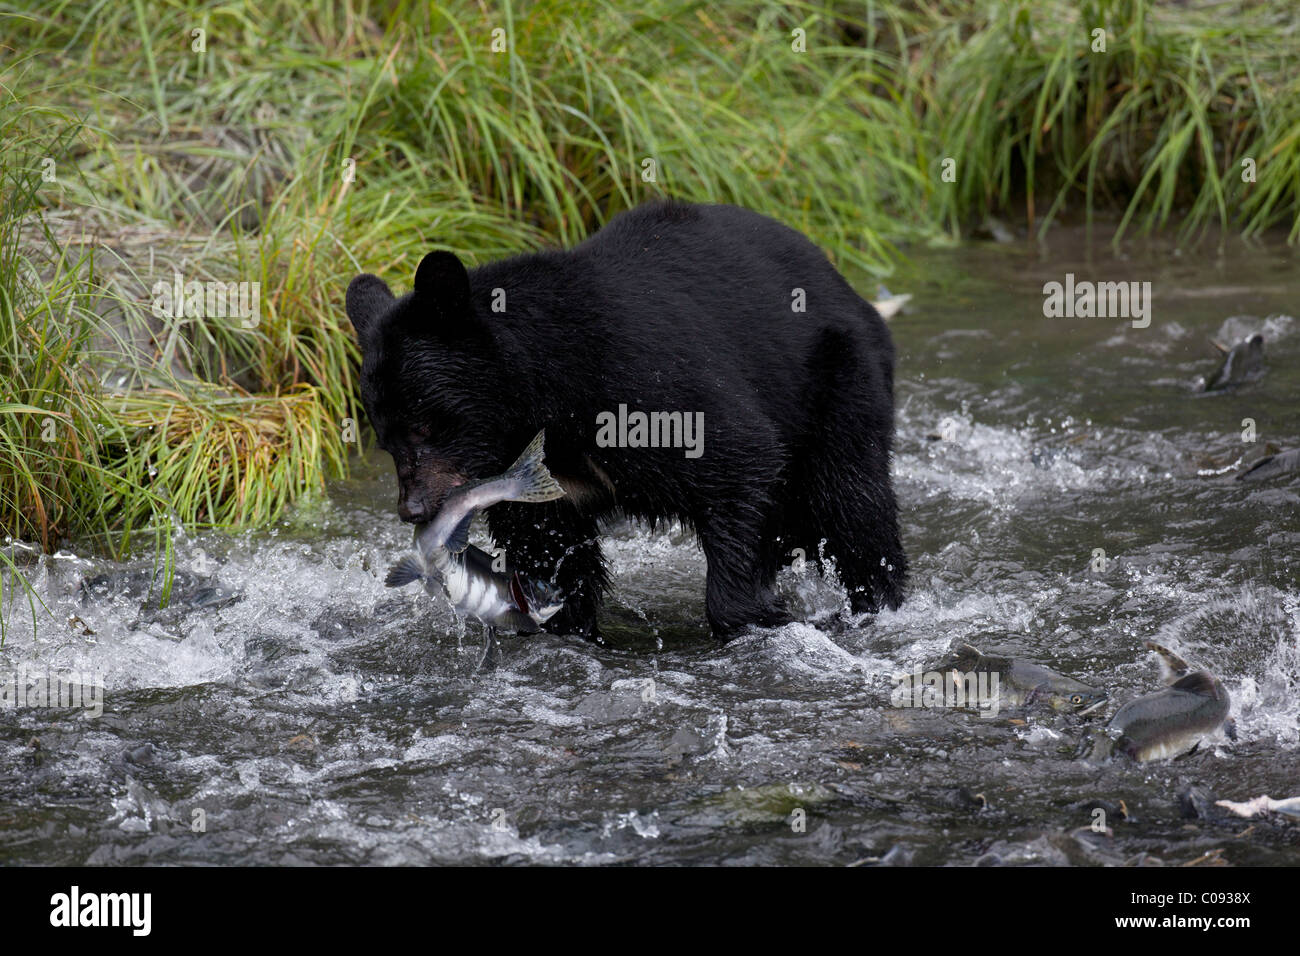 An adult Black bear grabs a Pink Salmon from a stream by Allison Point Campground in Valdez, Southcentral Alaska, - Stock Image